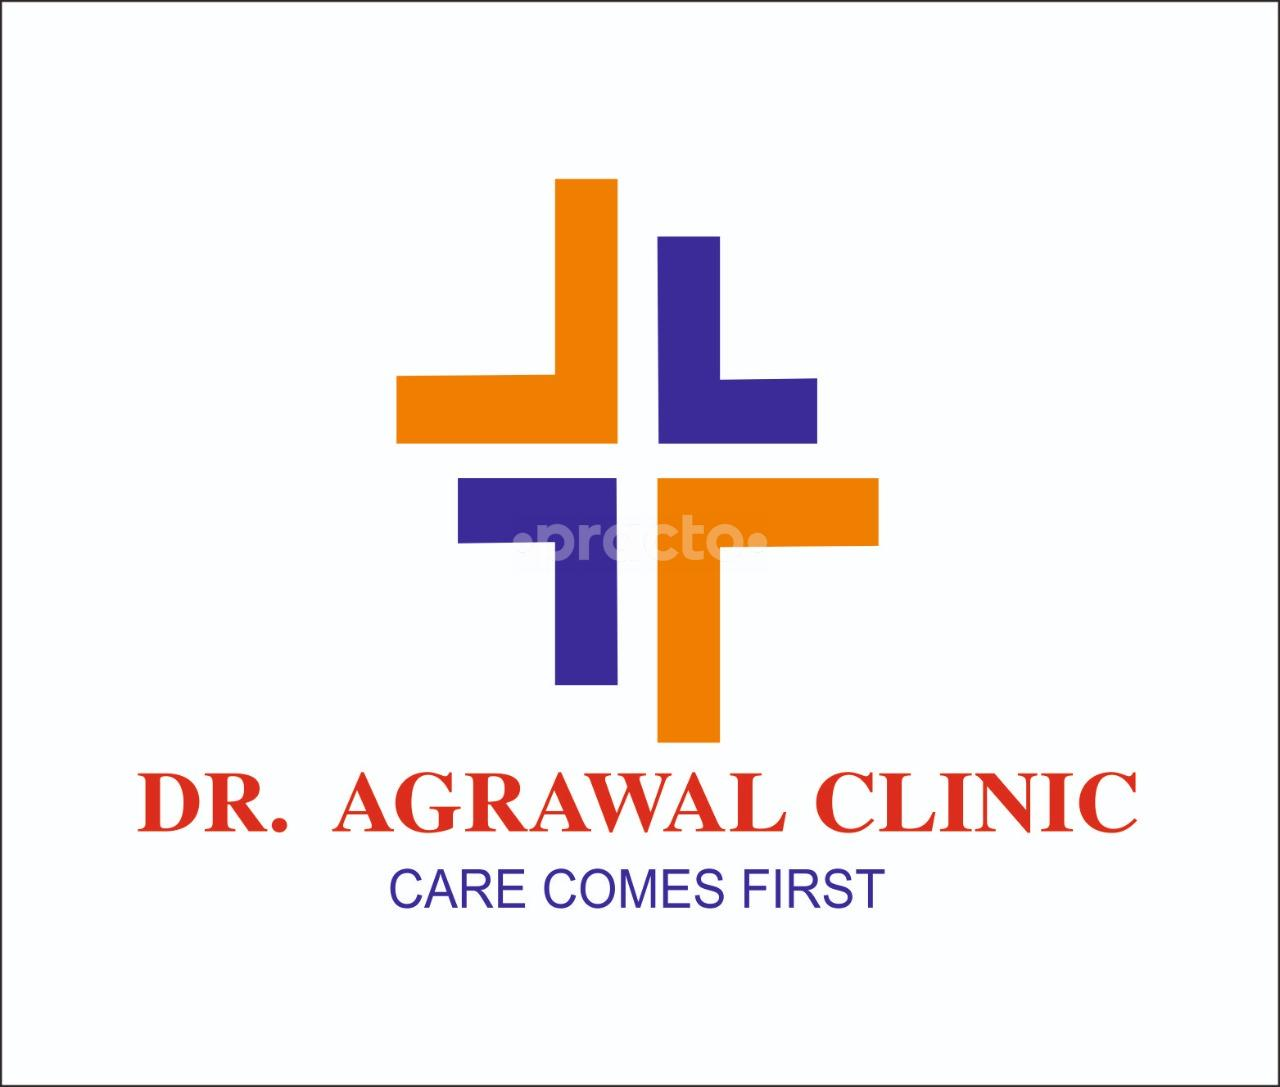 Dr. Agrawal Clinic